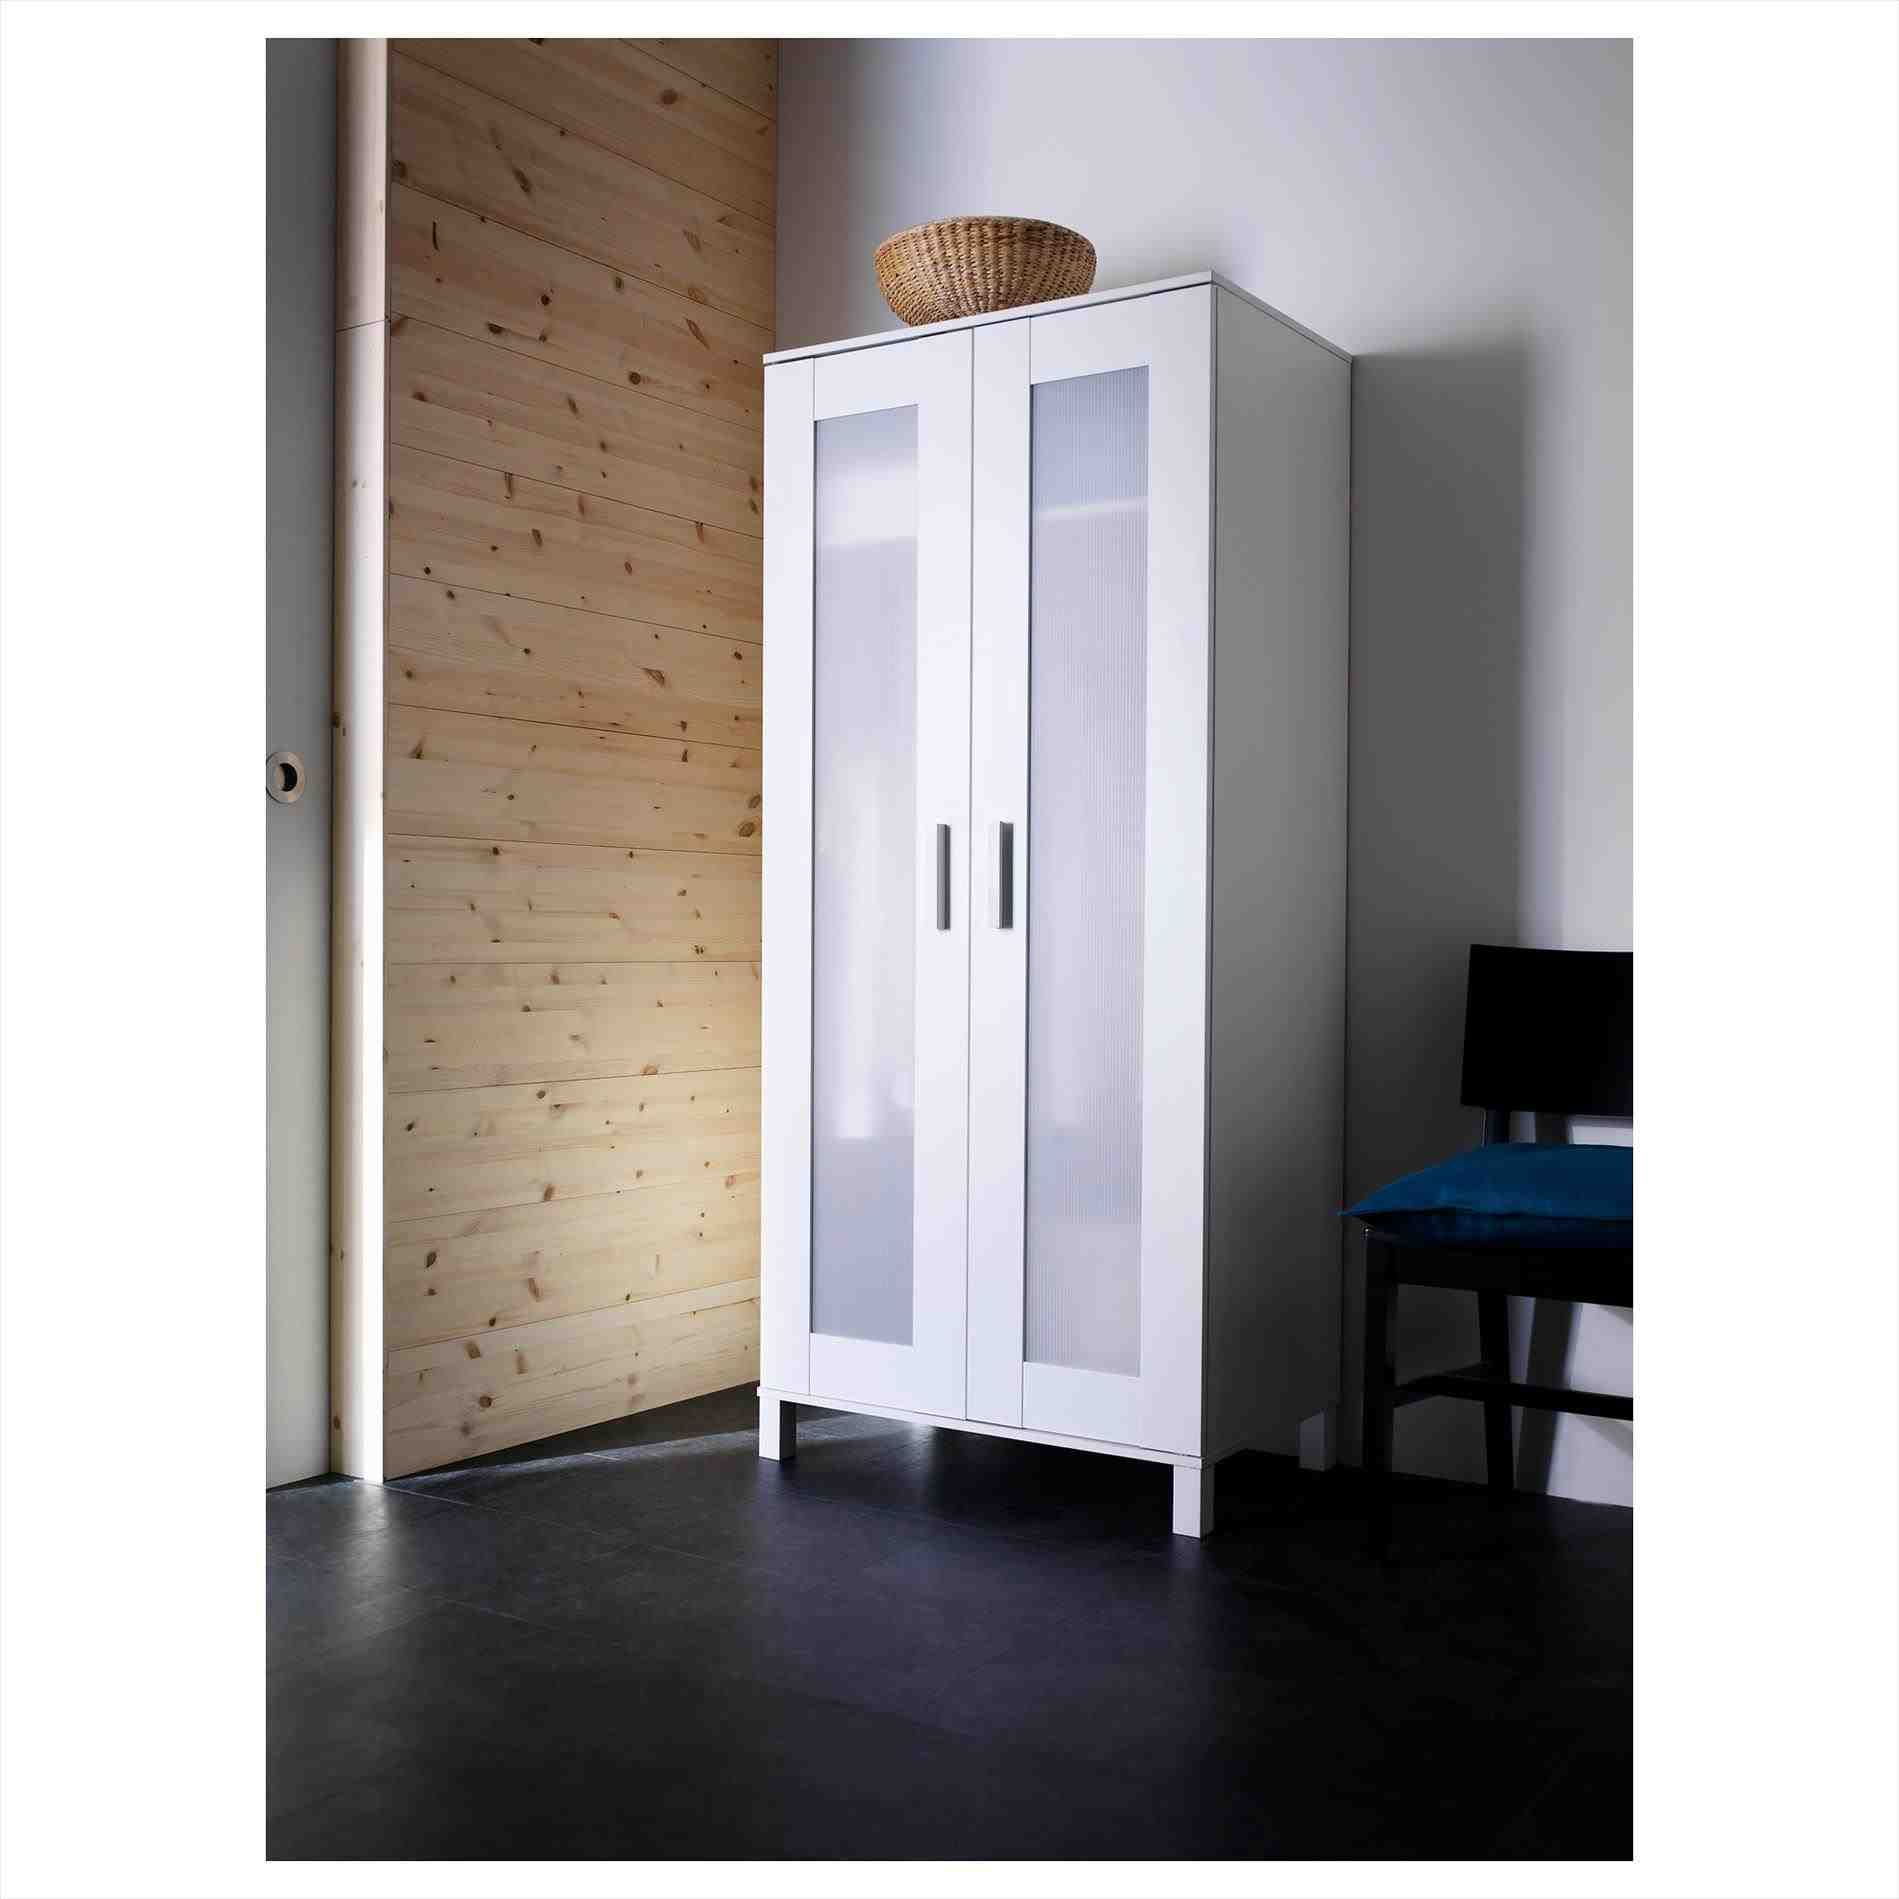 Ikea Bedroom Design Tool Gorgeous New Post Ikea Brimnes Wardrobe Hack  Decors Ideas  Pinterest Inspiration